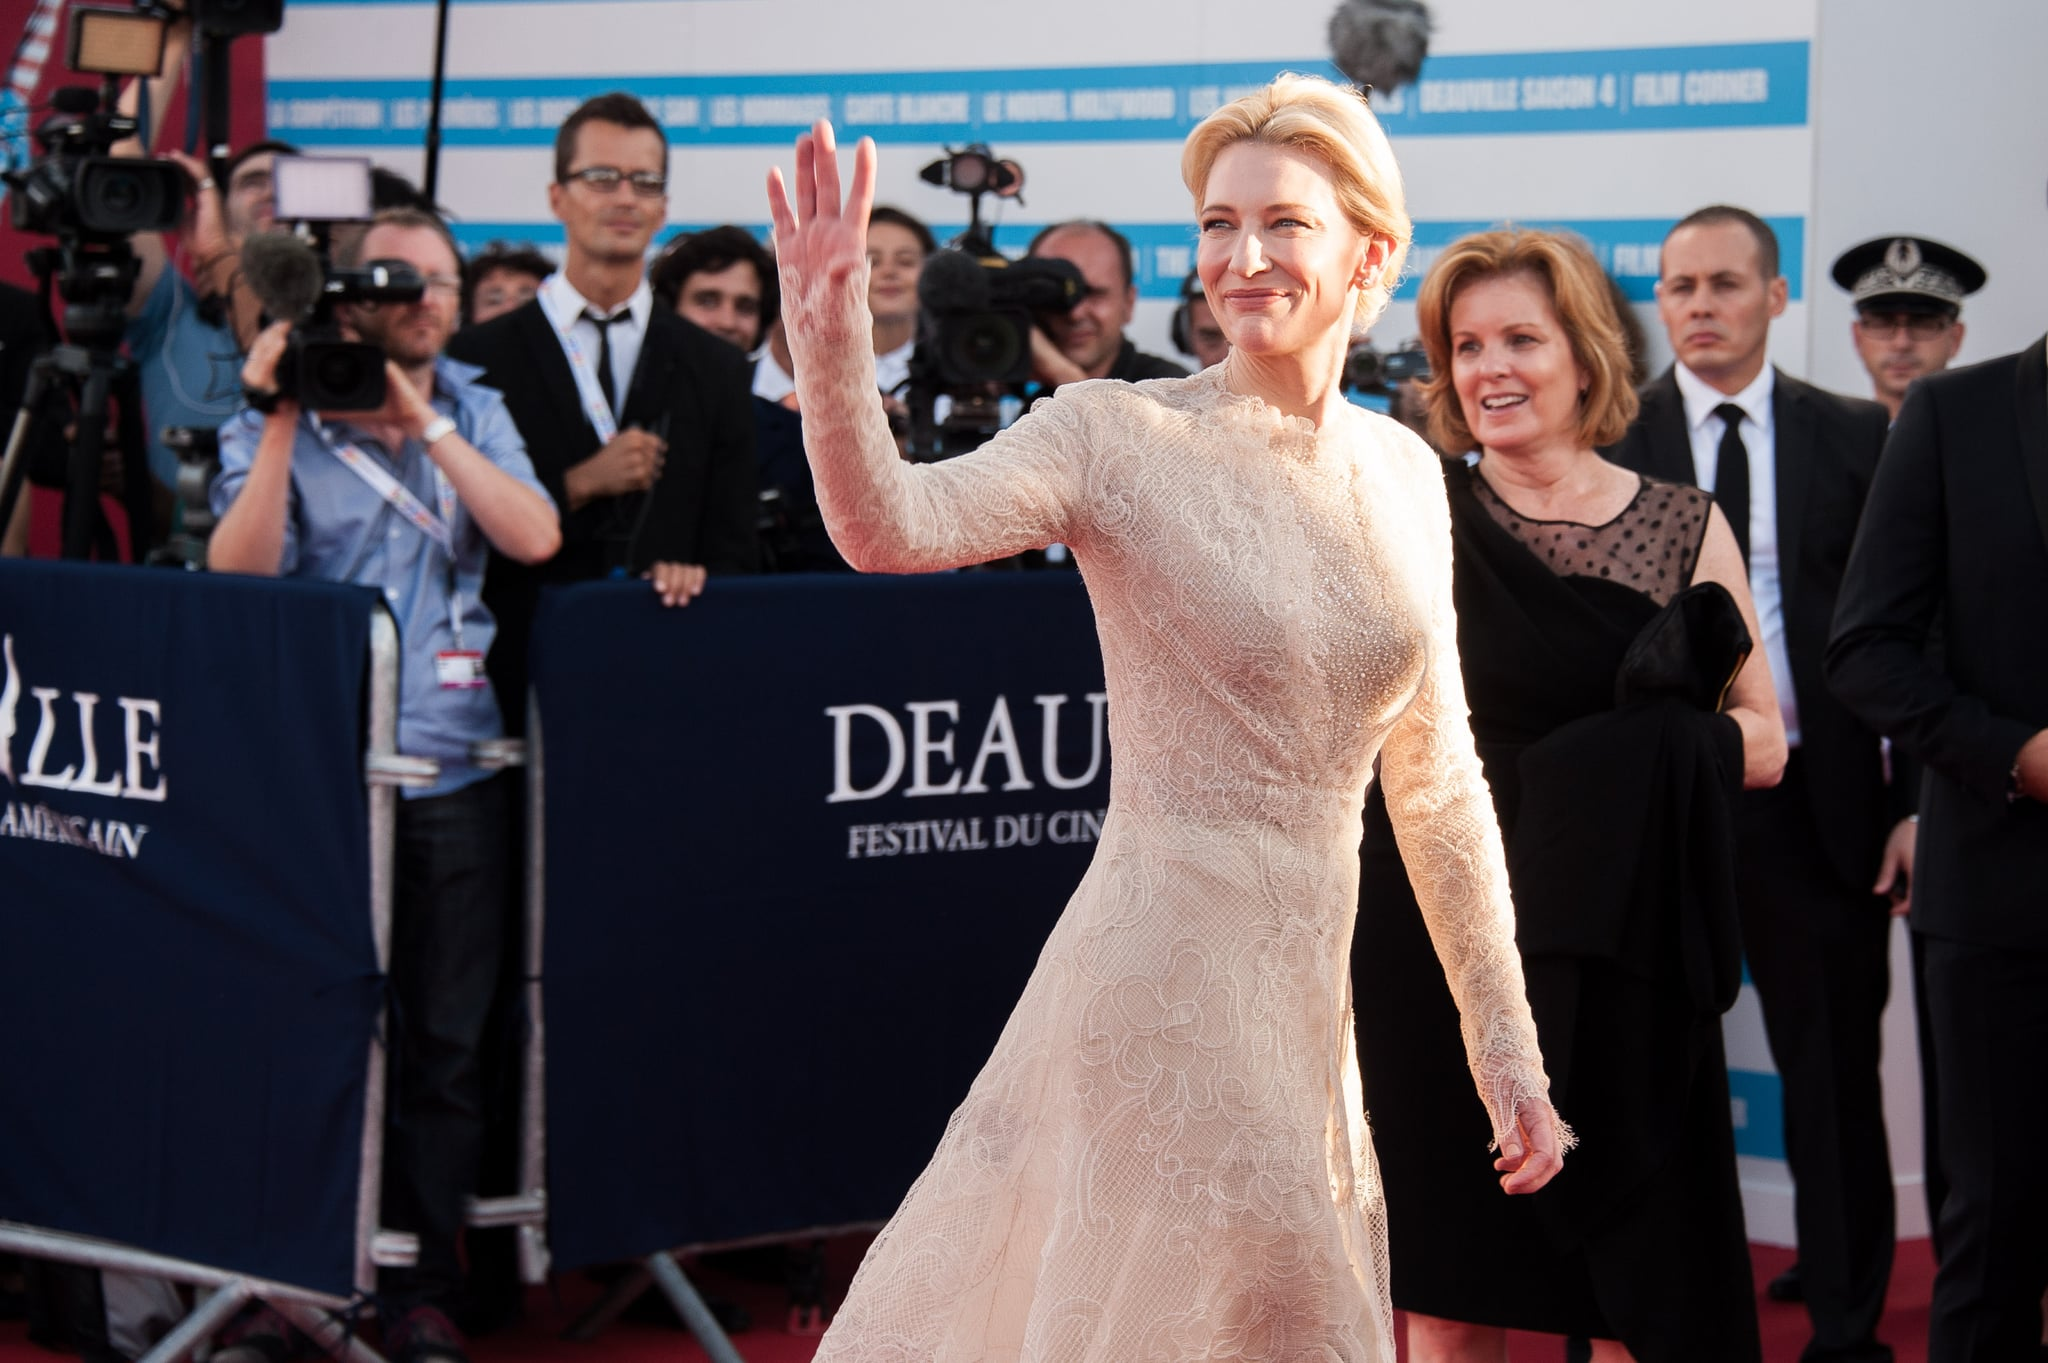 Cate Blanchett attended the opening ceremony for the Deauville American Film Festival.